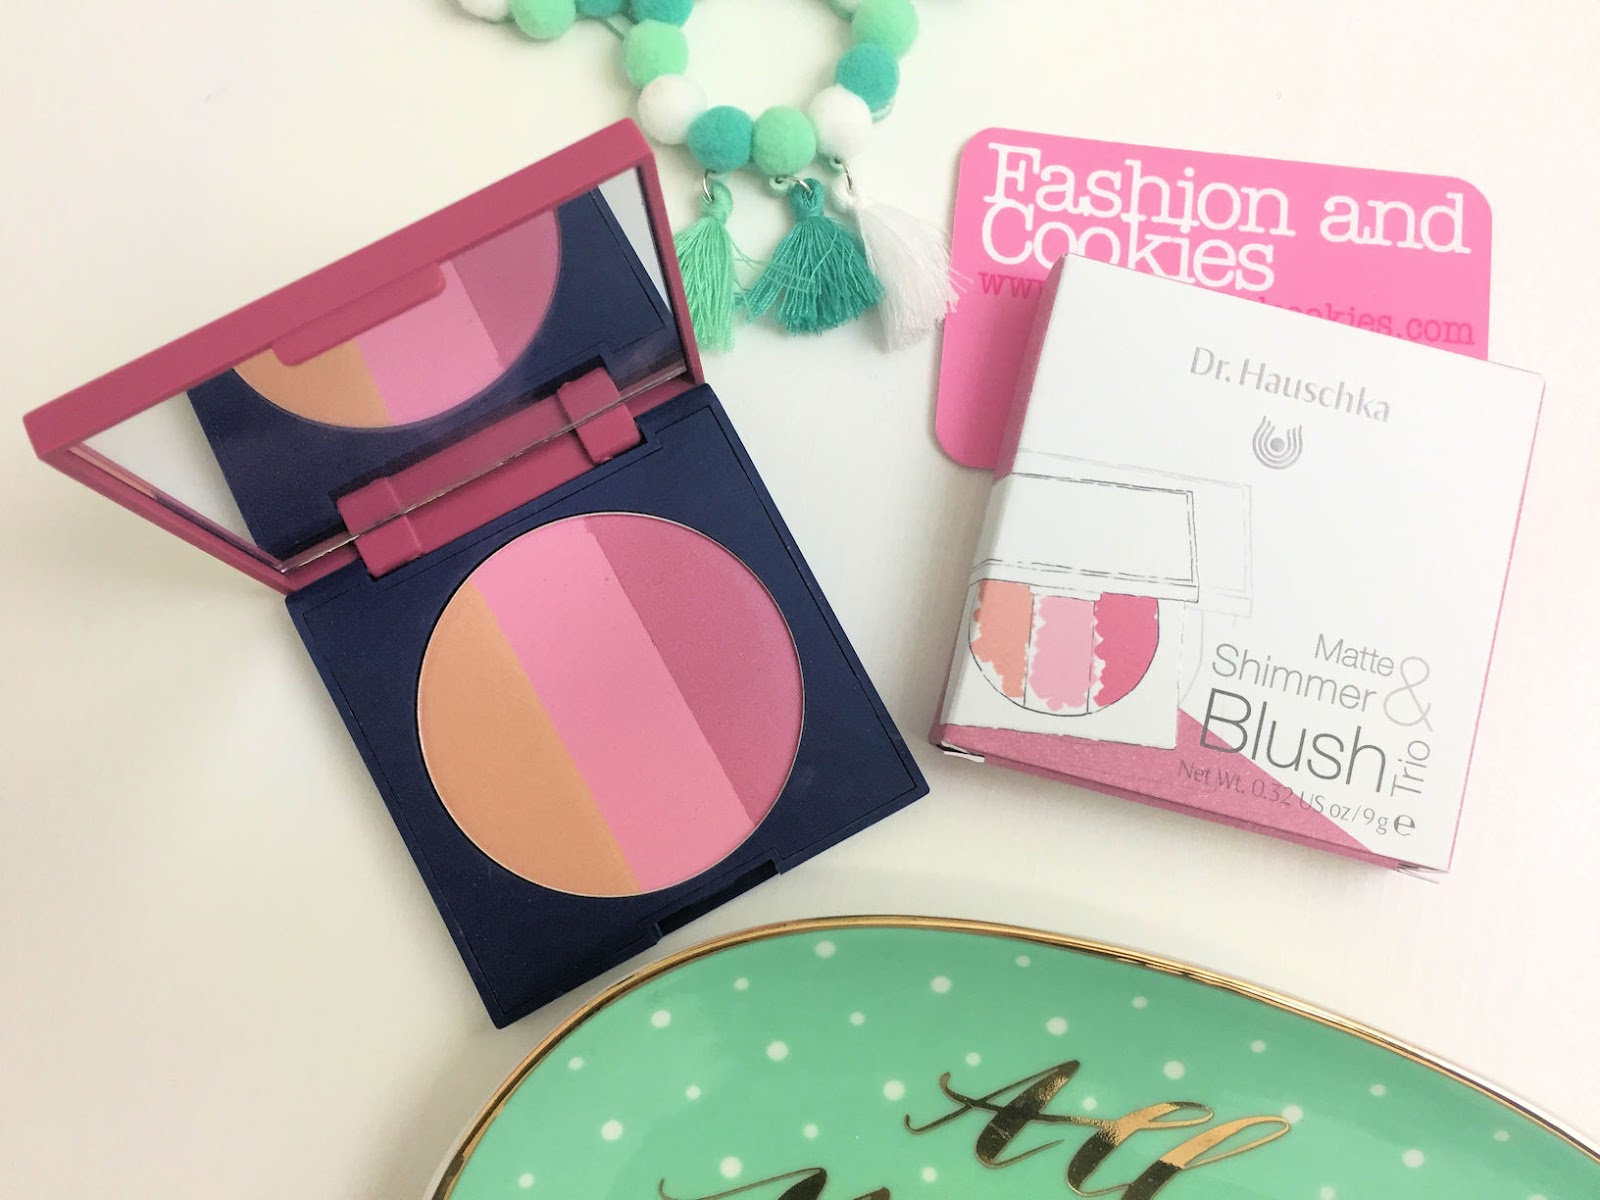 """collezione makeup Dr. Hauschka per l'autunno/inverno 2016/2017 """"Welcome Back"""" su Fashion and Cookies fashion and beauty blog, beauty blogger"""